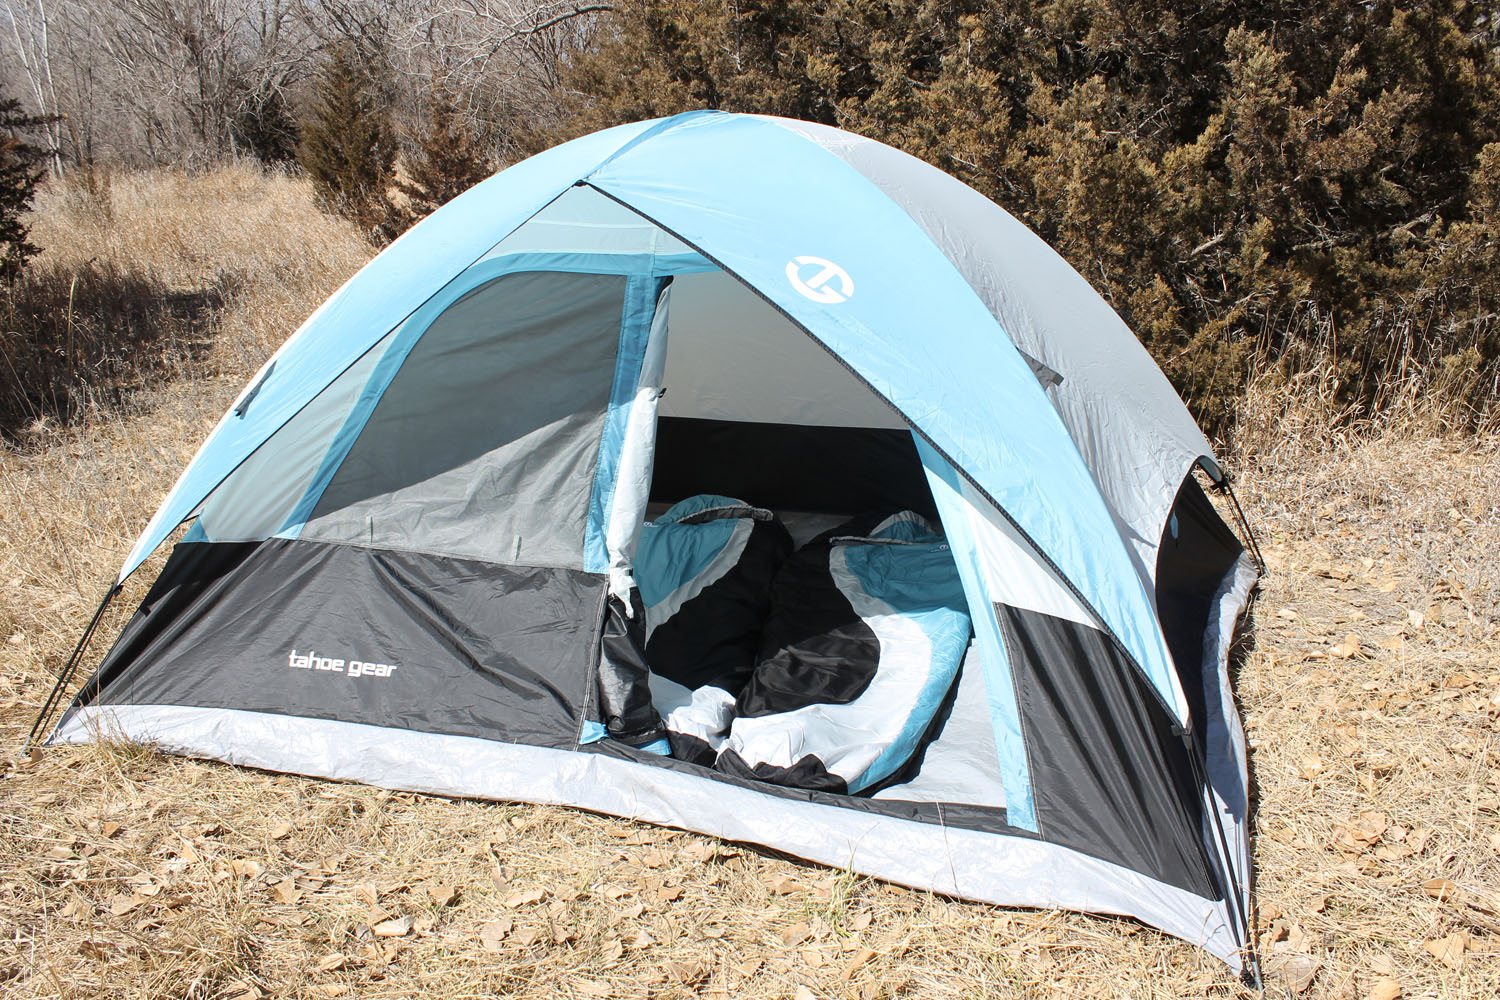 Tahoe Gear Granite 5-Person Family Tent Set & Two Island Peak Sleeping Bags